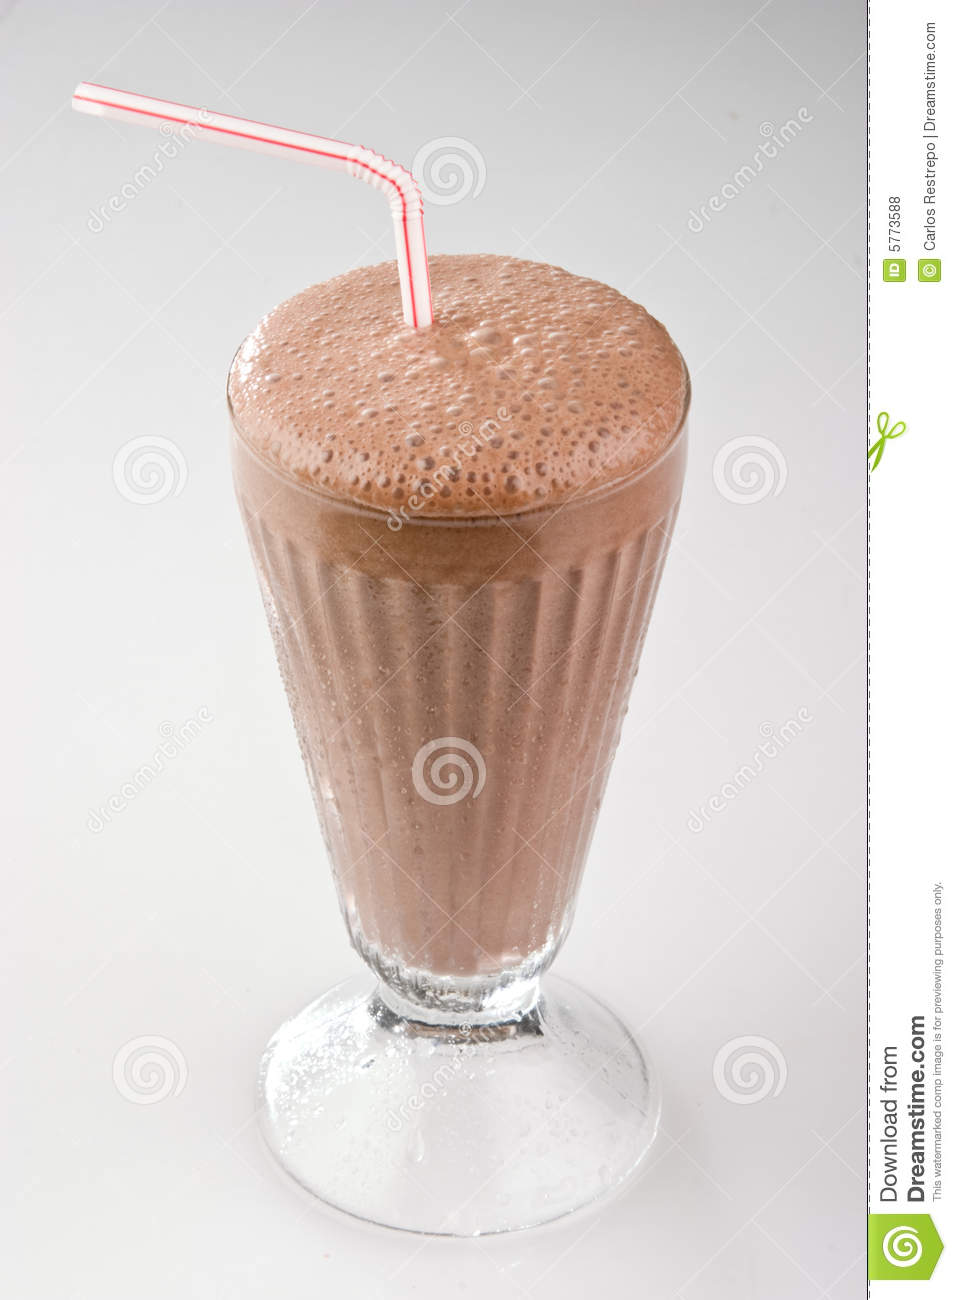 Chocolate Milk Shake .  Let This Milk Shake Wake You Up! Blend Four Squares Melted dark Chocolate ( for a burst of iron!) with two scoops of chocolate fro-yo & a splash of 1% milk.